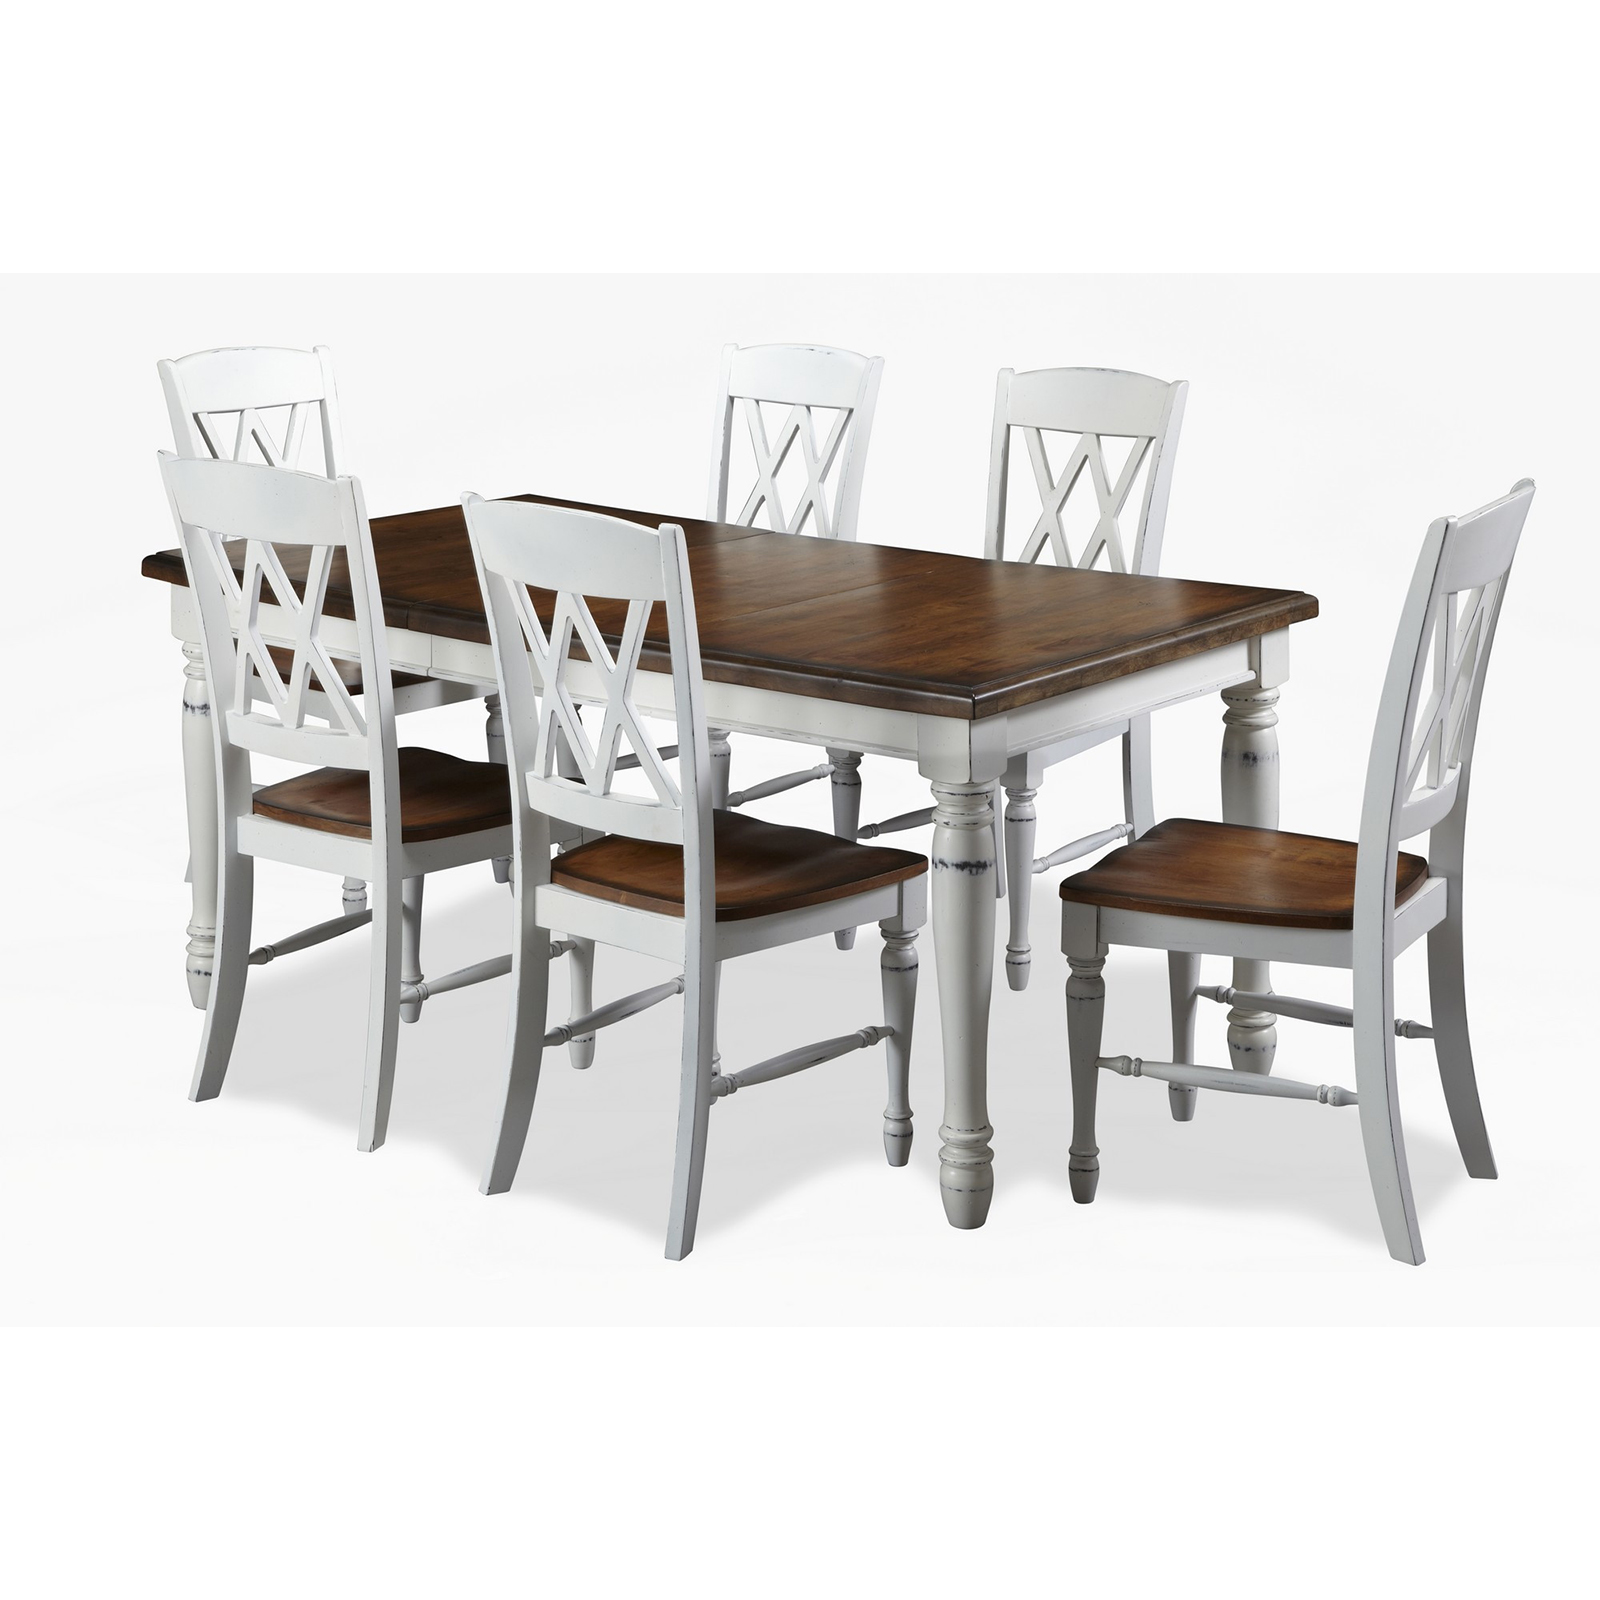 Home Styles Monarch 7 Piece Dining Table Set With 6 Double X Back Chairs